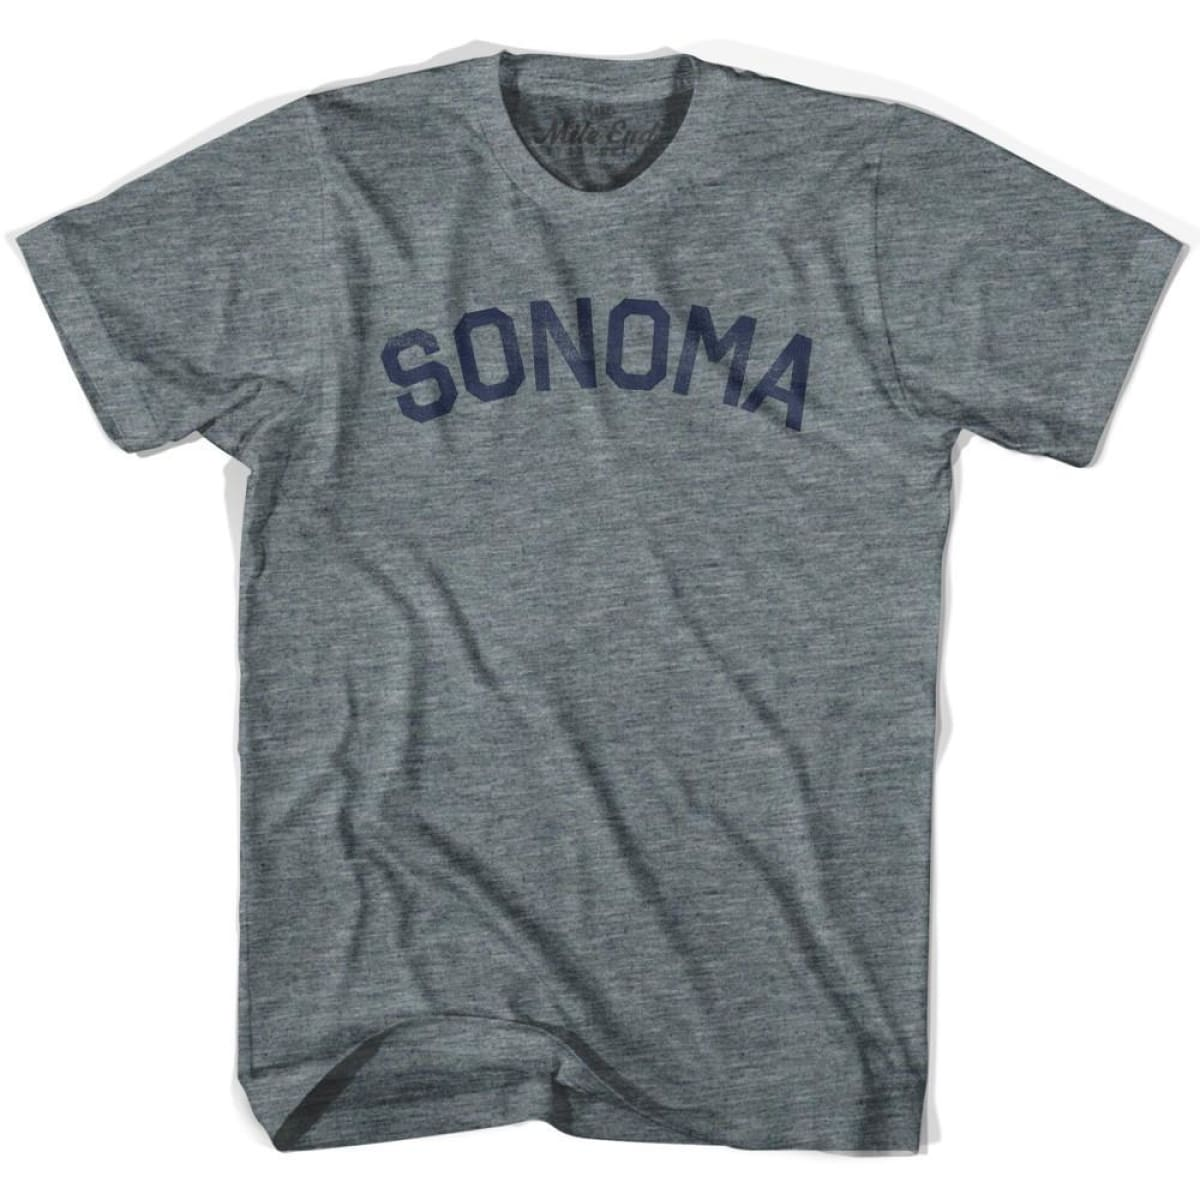 Sonoma City Vintage T-shirt - Athletic Grey / Adult X-Small - Mile End City